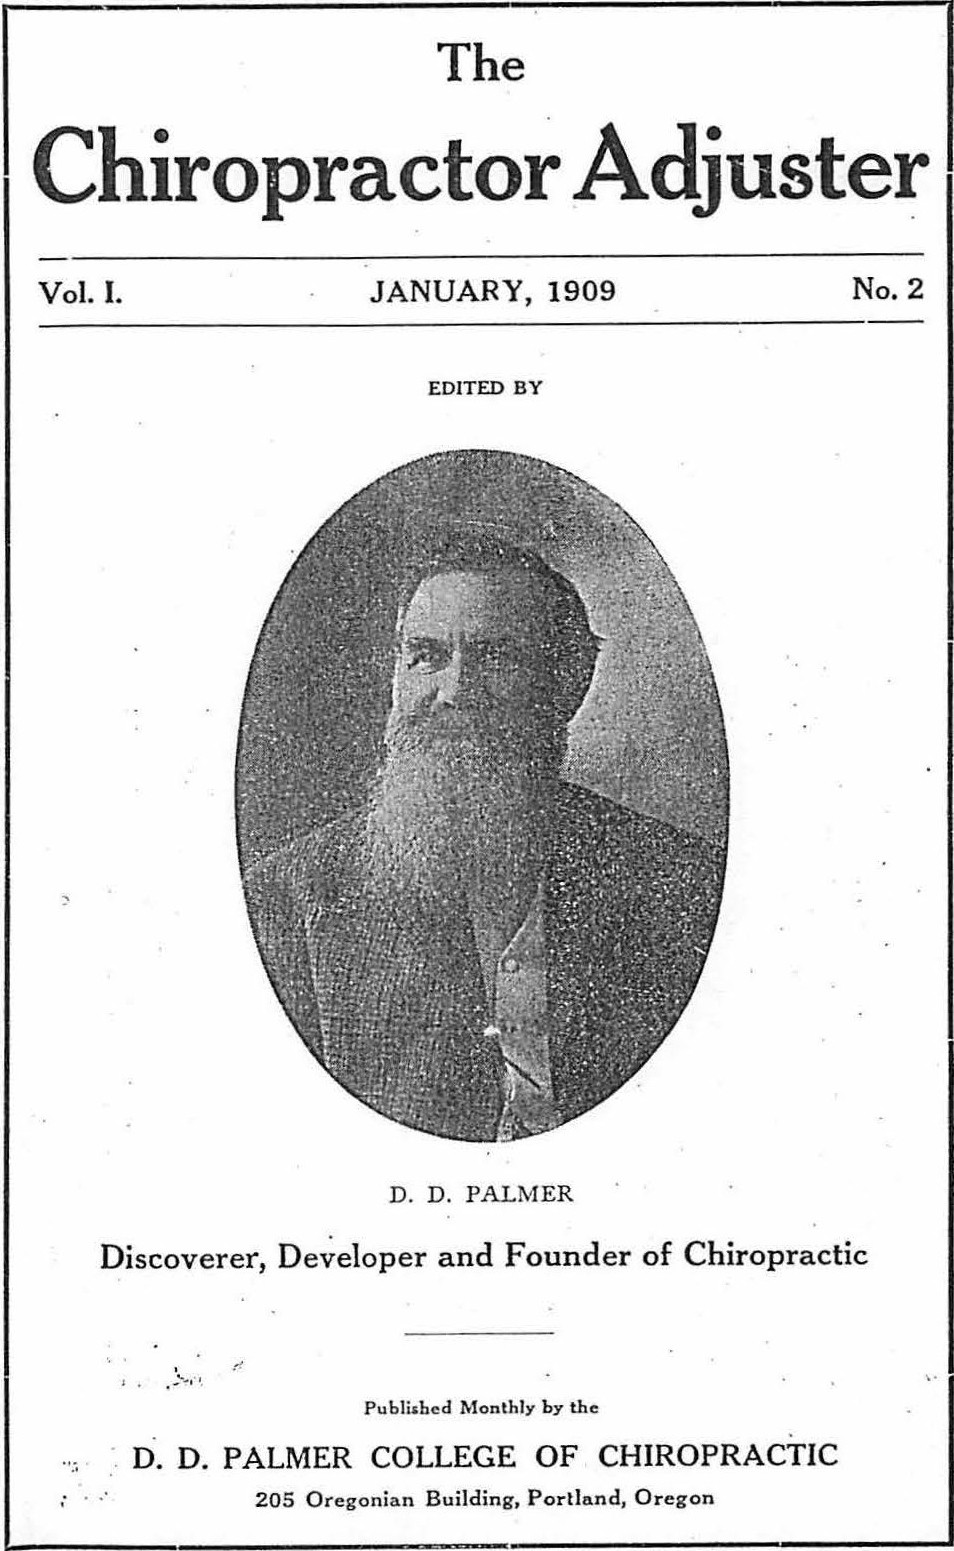 DD Palmer second issue of The Chiropractor Adjuster. A source for one of DD Palmer's books.